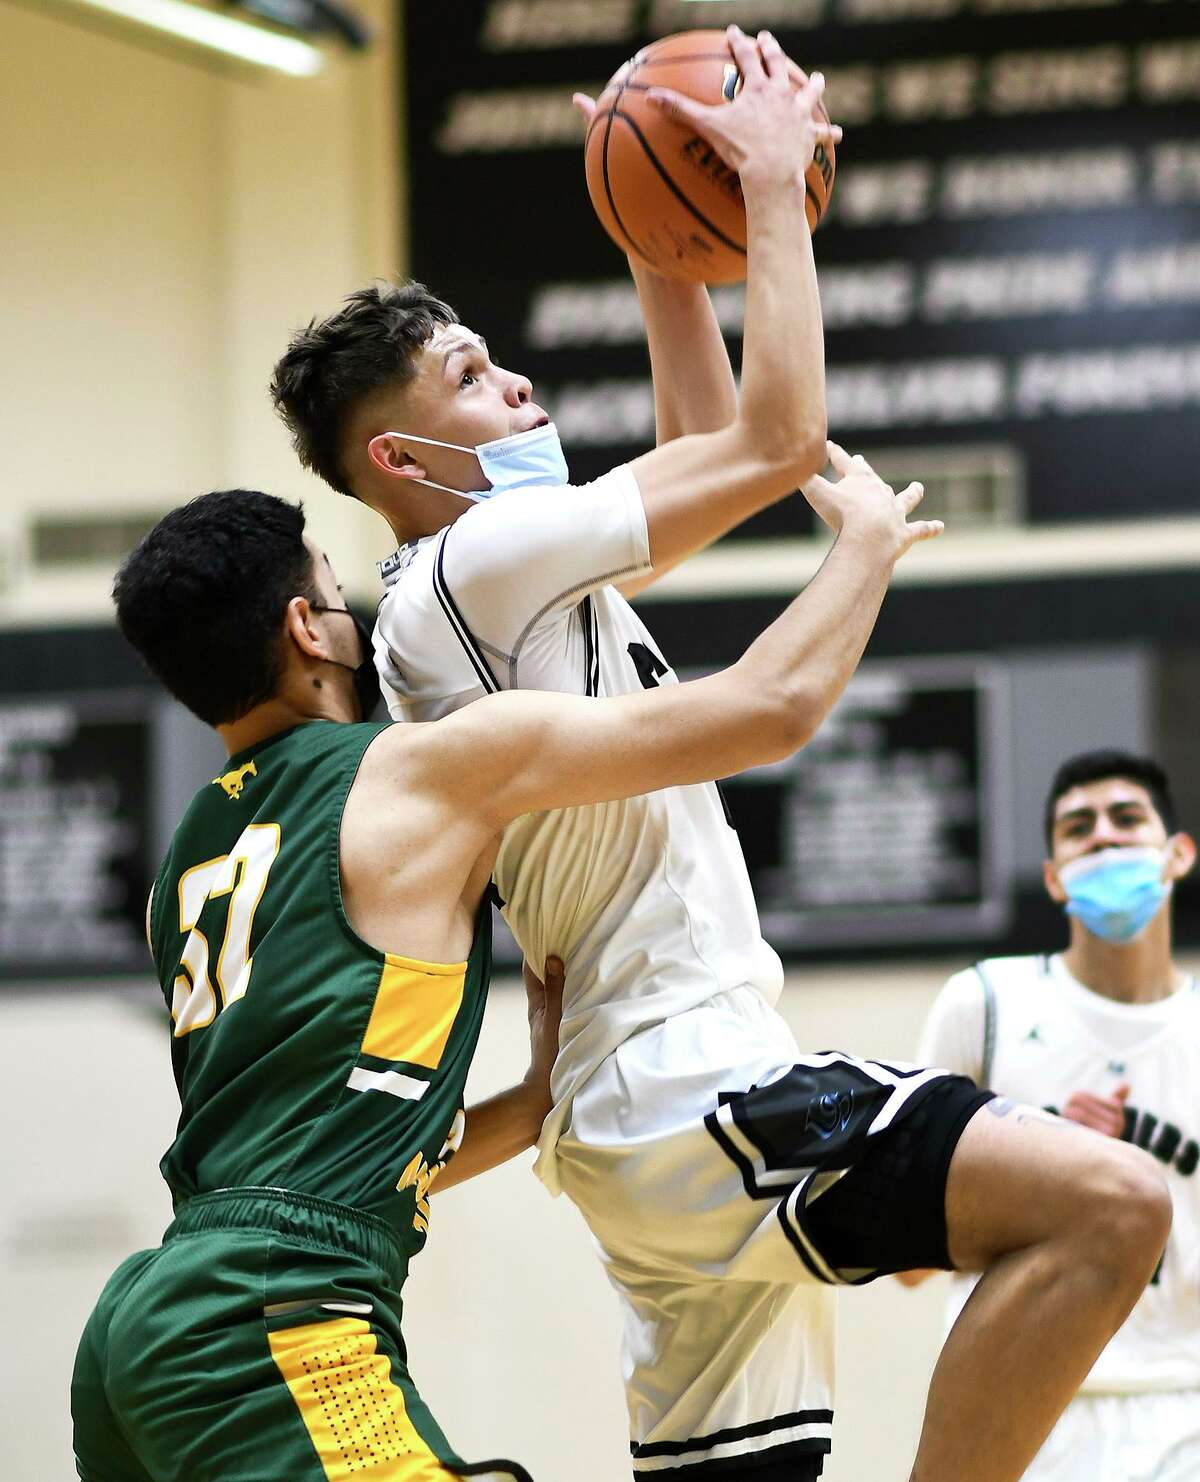 Carlos Lopez scored 17 points as United South beat Nixon by five on Wednesday.